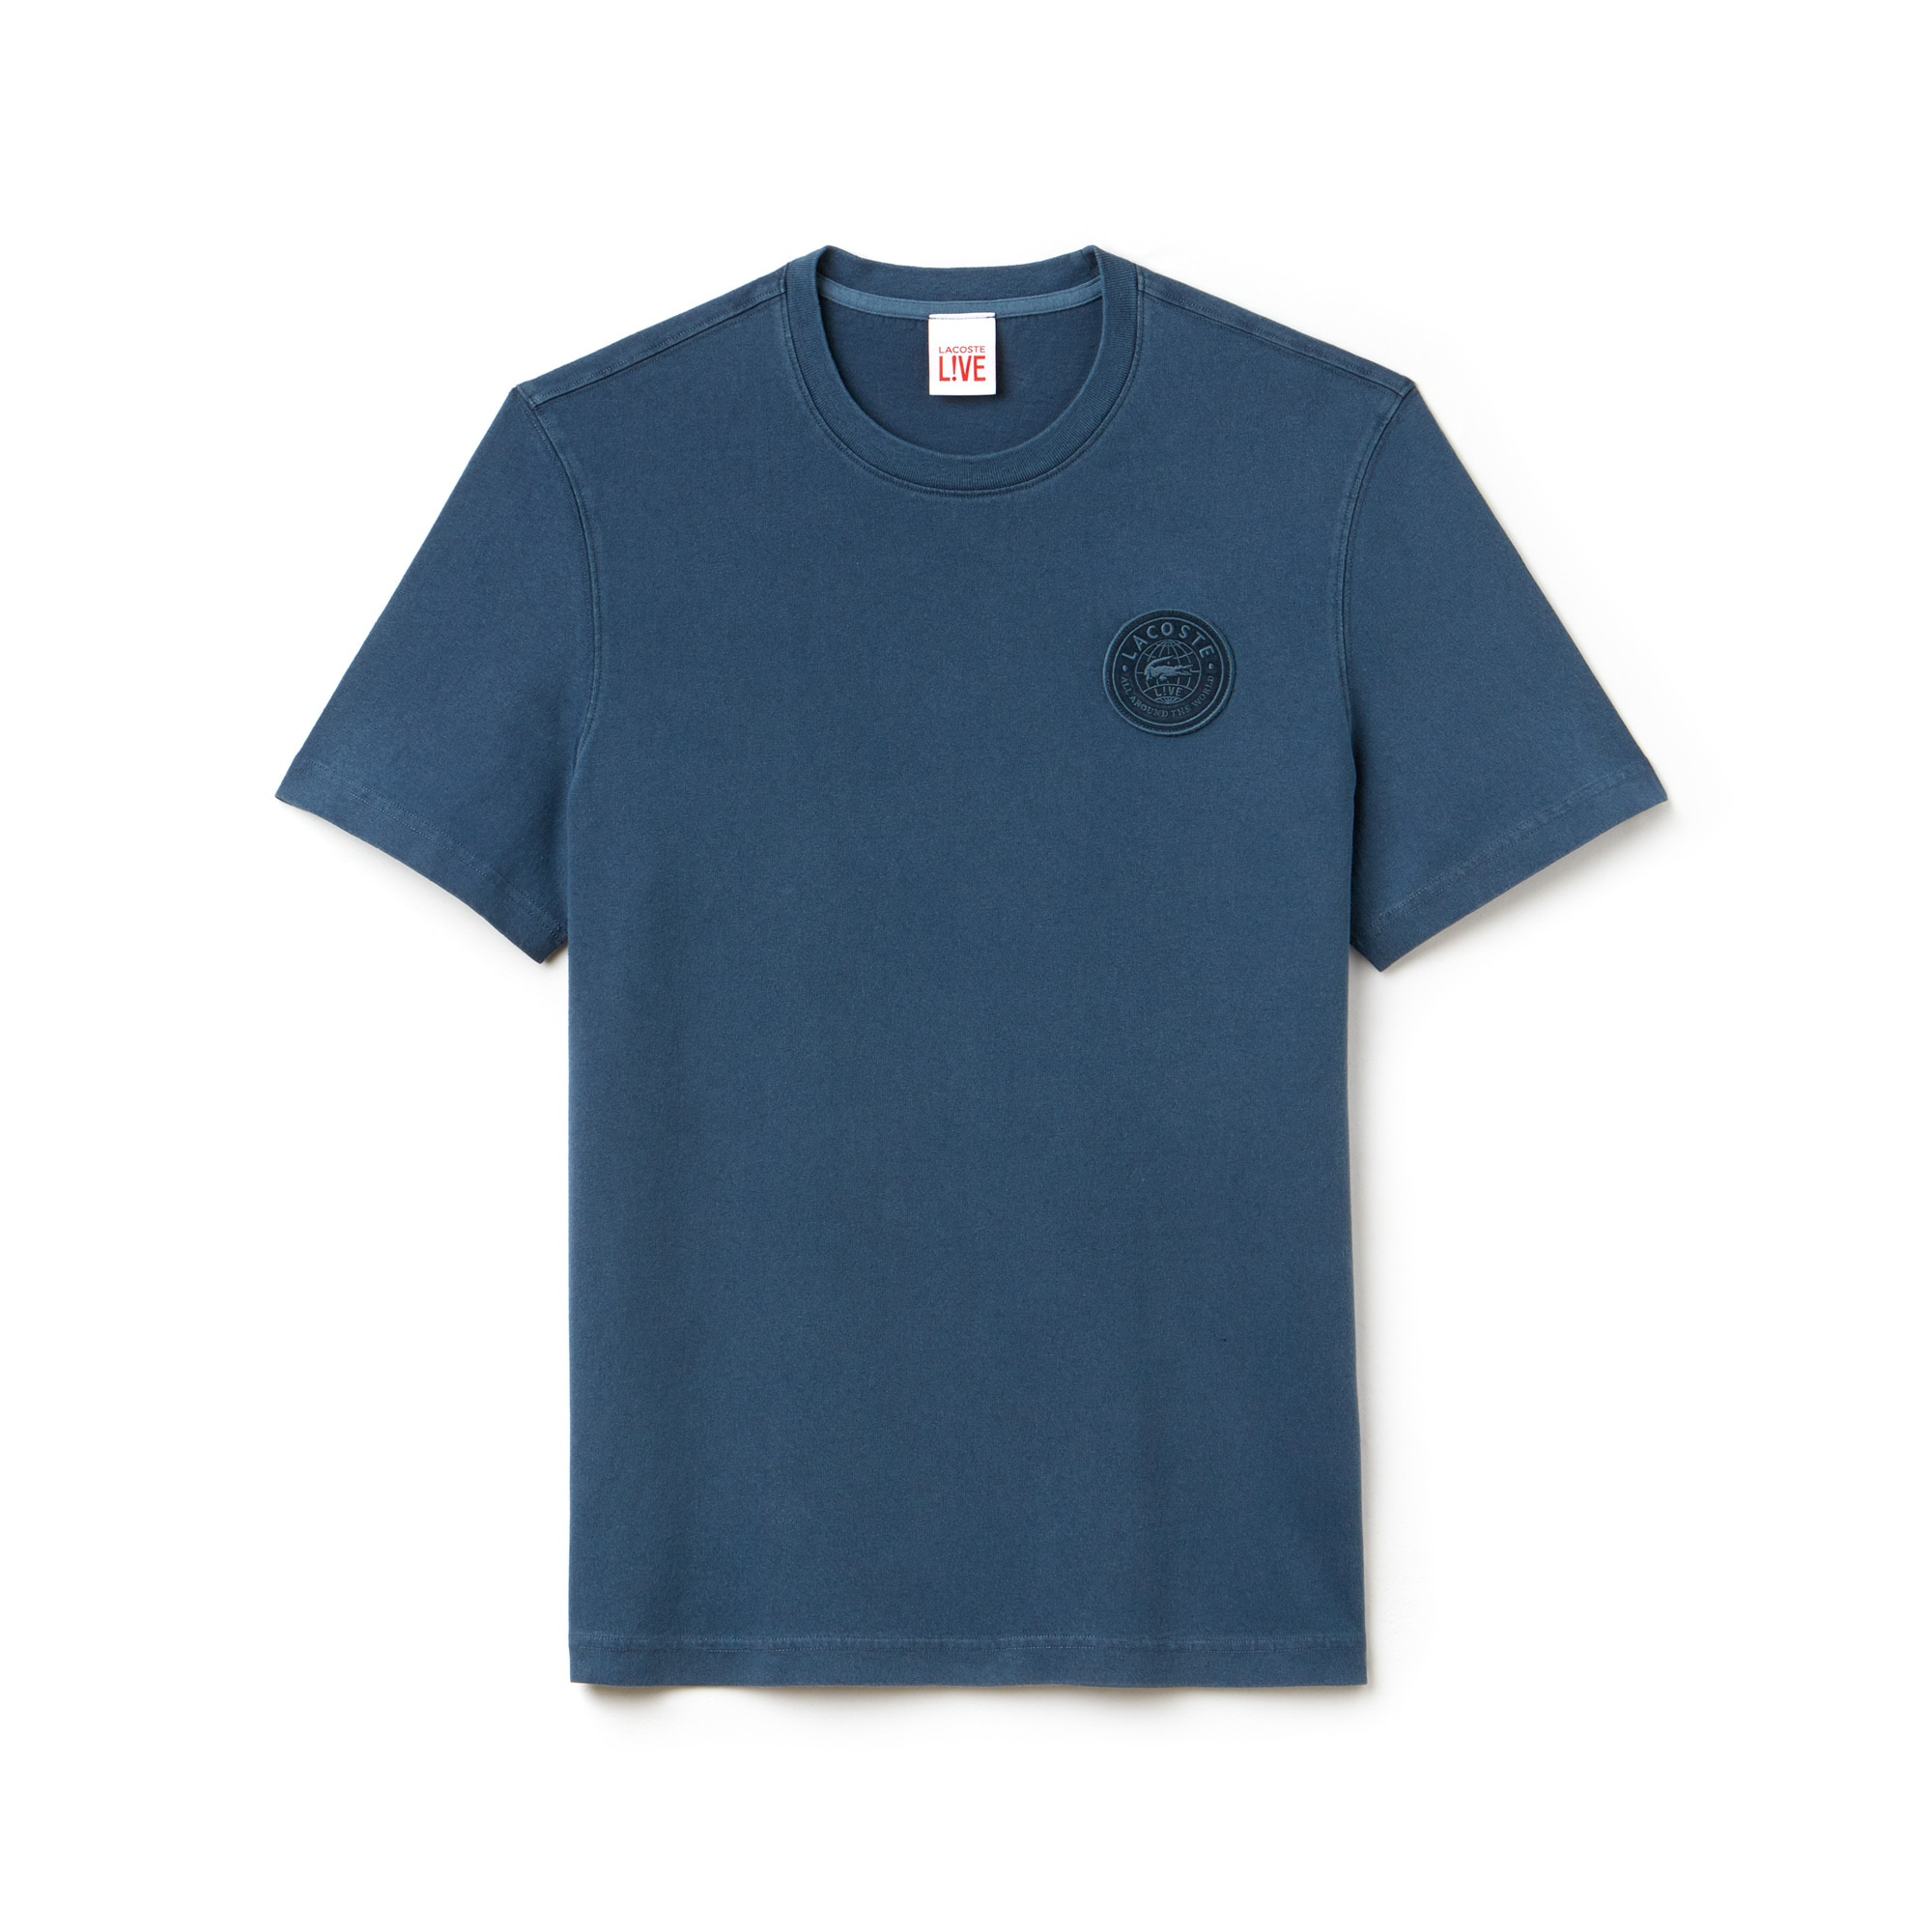 Men's LIVE Faded T-Shirt With Badge